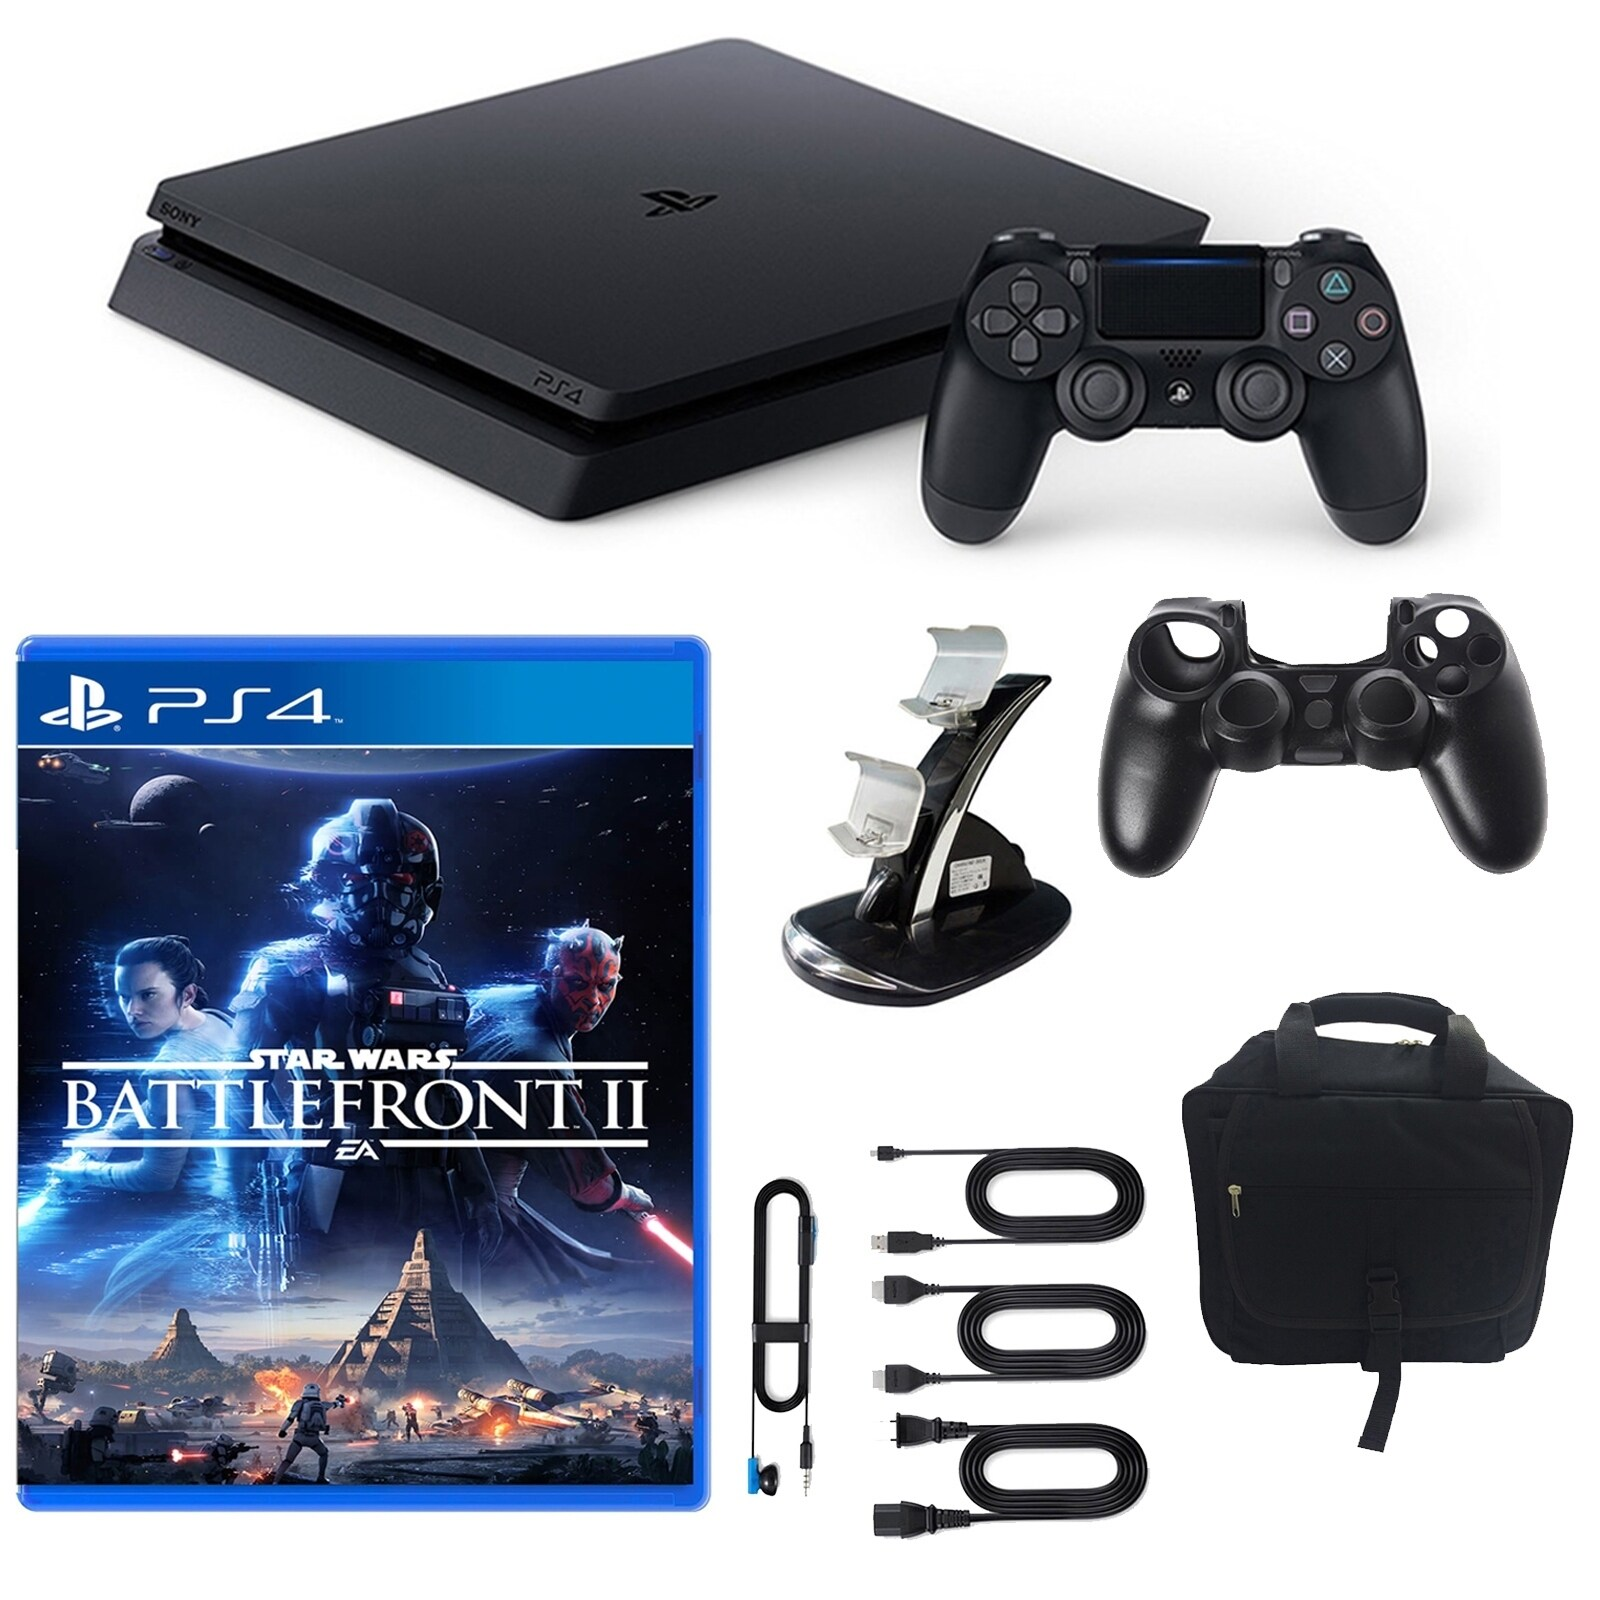 Sony PlayStation 4 Slim Star Wars Battlefront 2 1TB Core Console and Accessories, Blue storm #943103401M